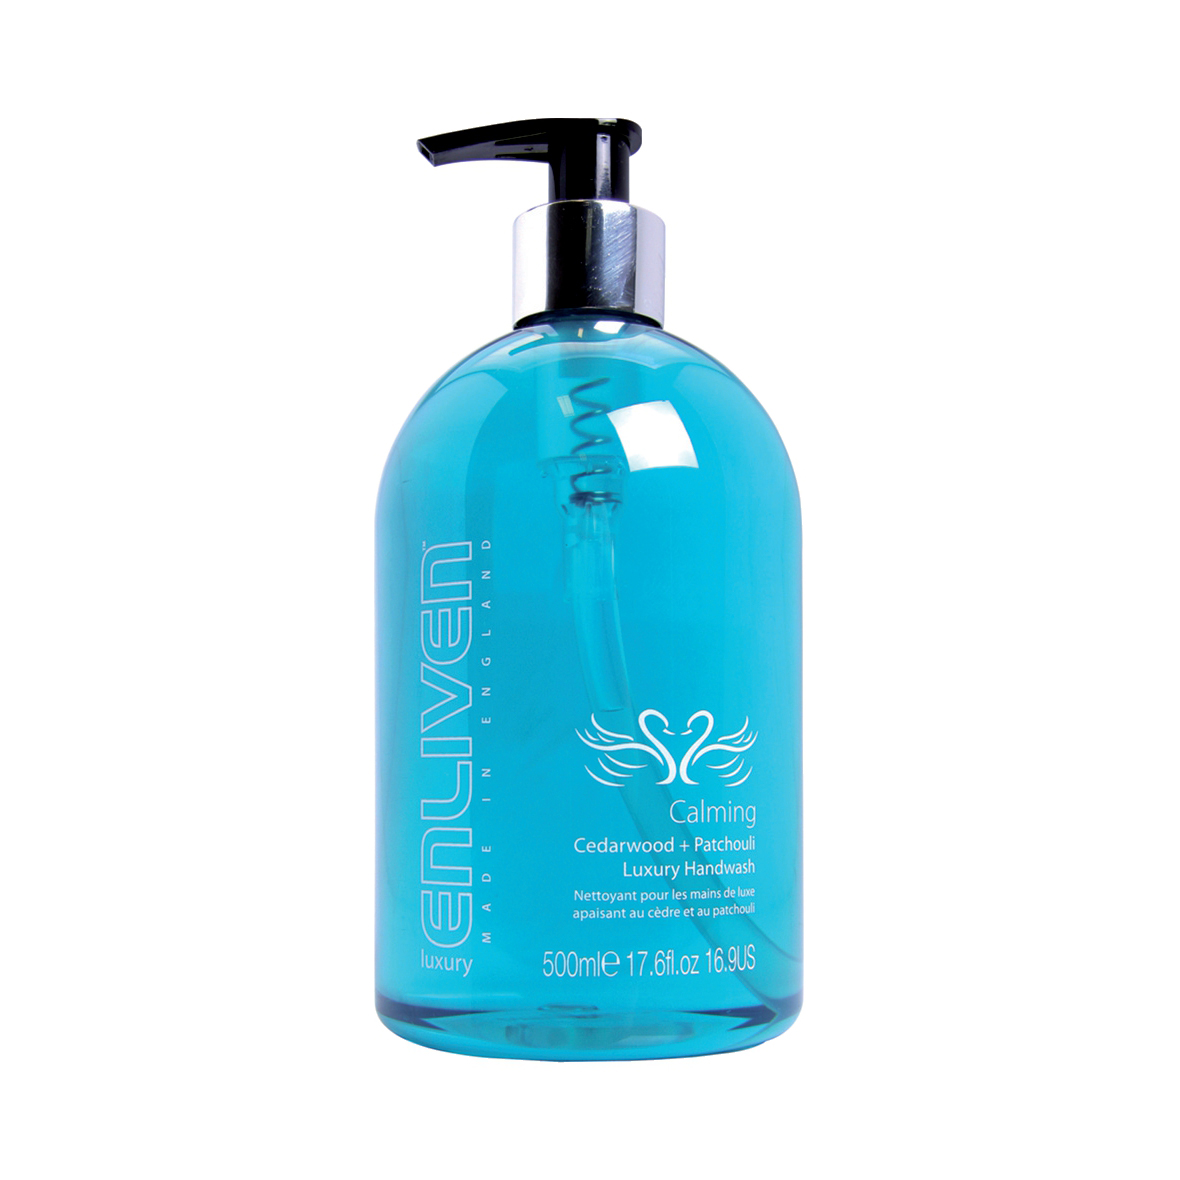 Enliven Luxury Handwash Calming Cedarwood & Patchouli 500ml Ref 502328